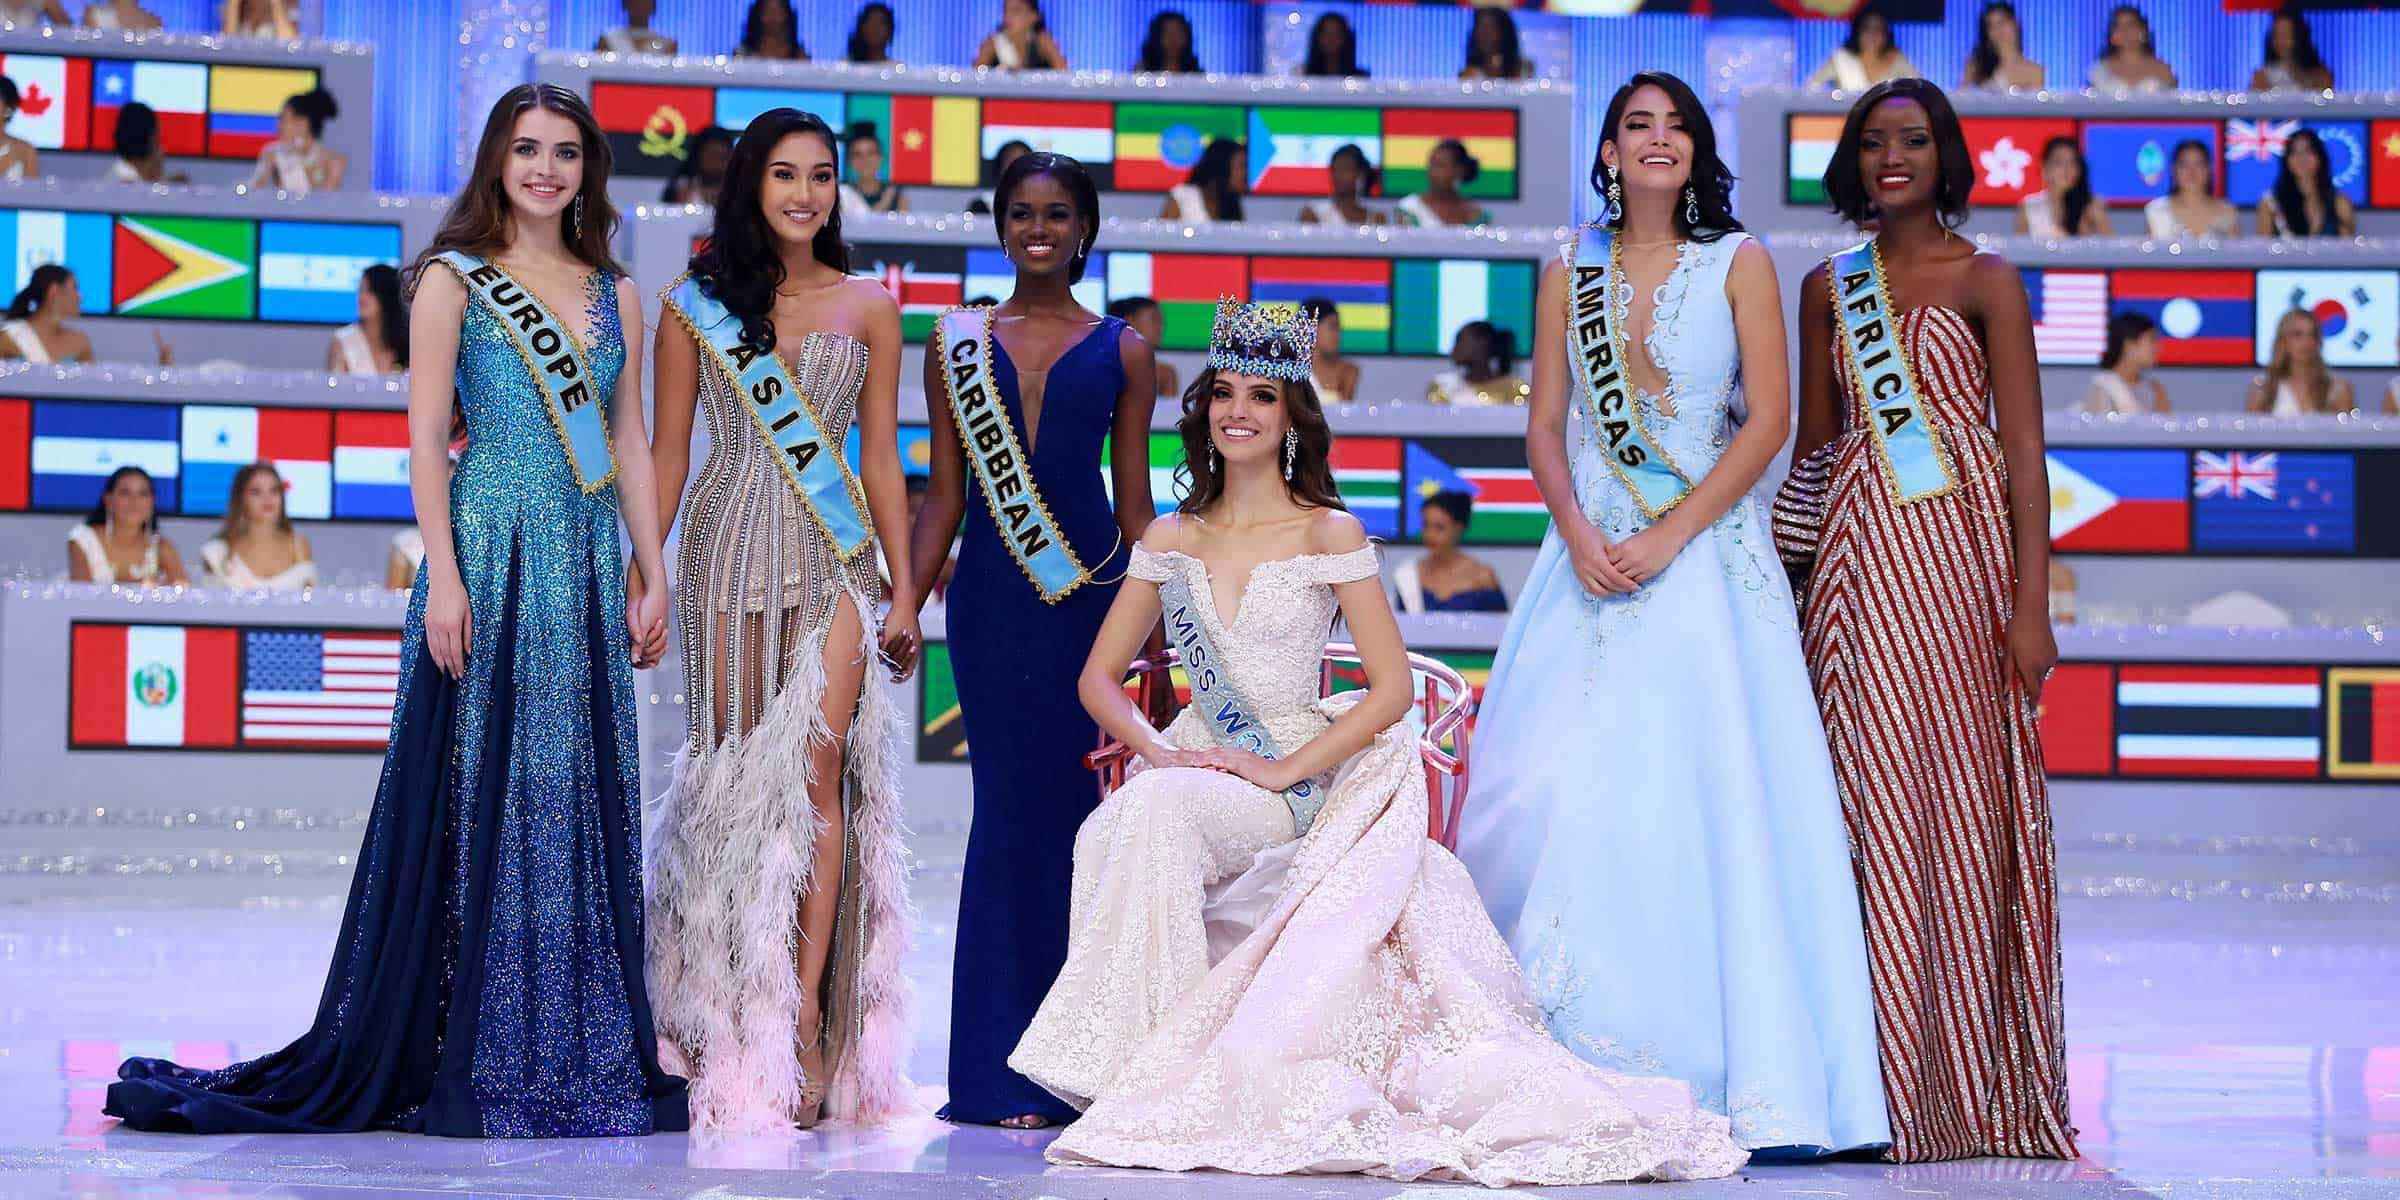 Vanessa Ponde De Leon - Miss World 2018